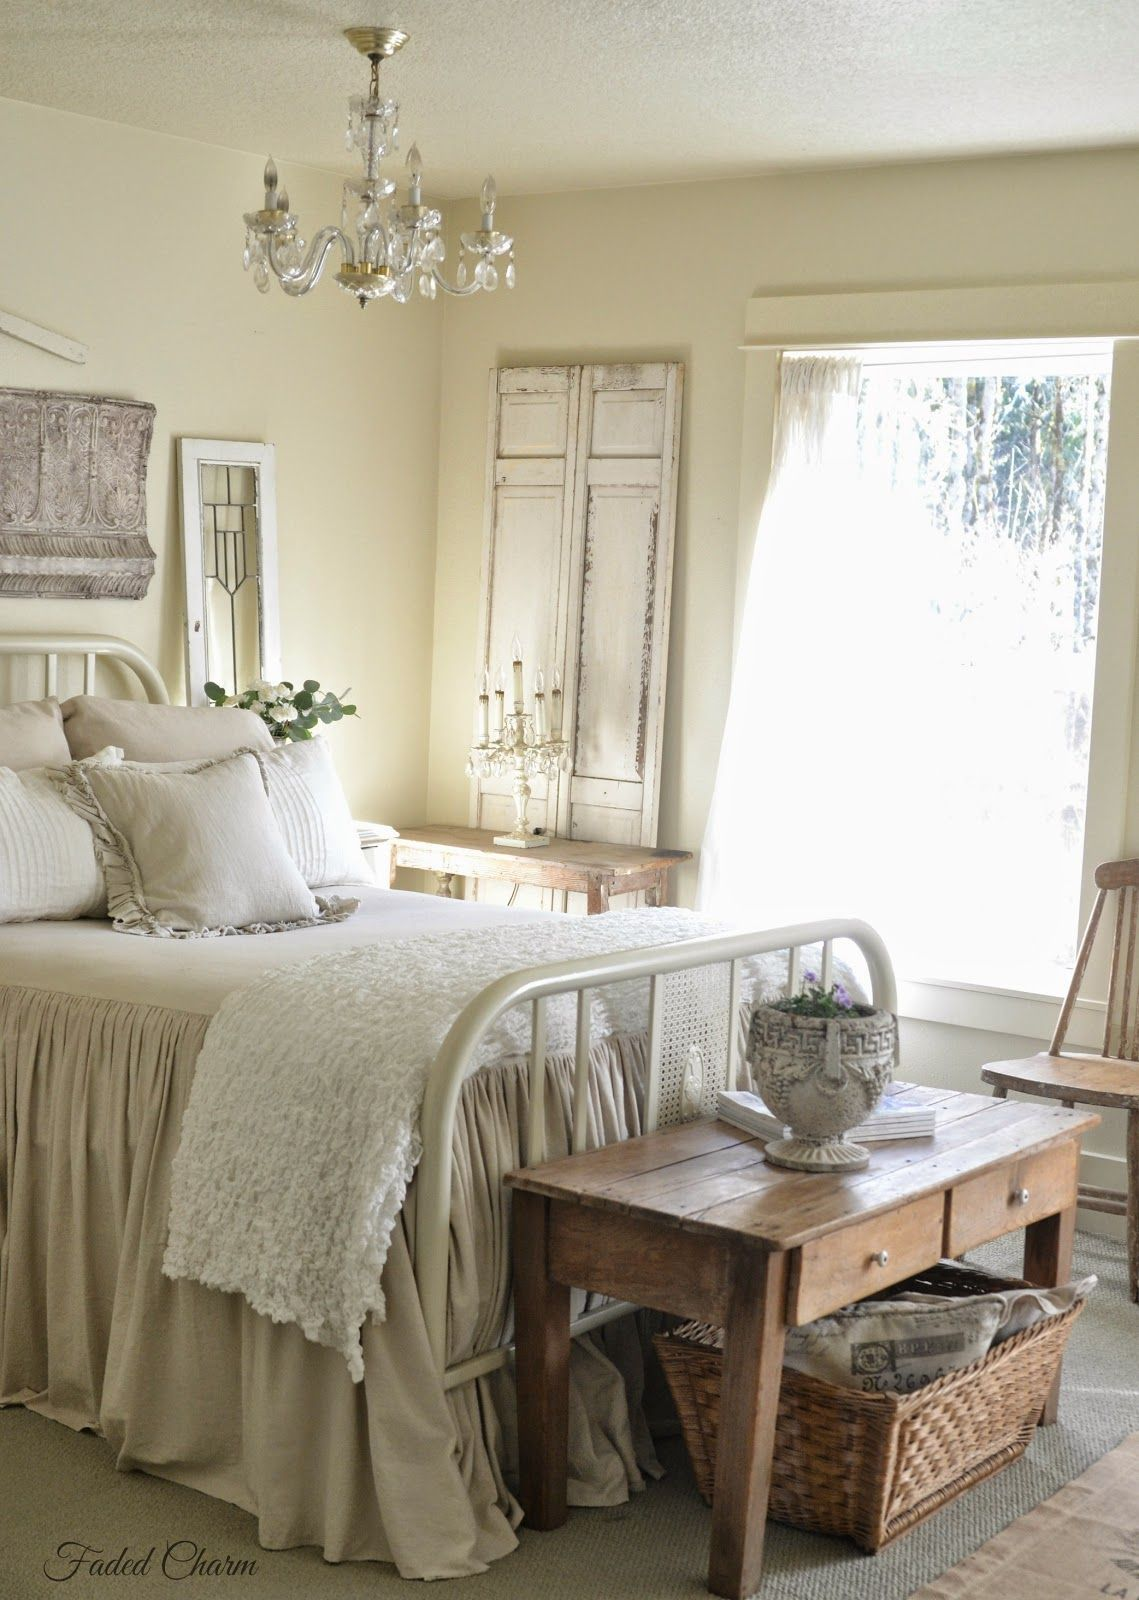 Farmhouse Bedroom salvaged architectural pieces and mismatched furniture wi